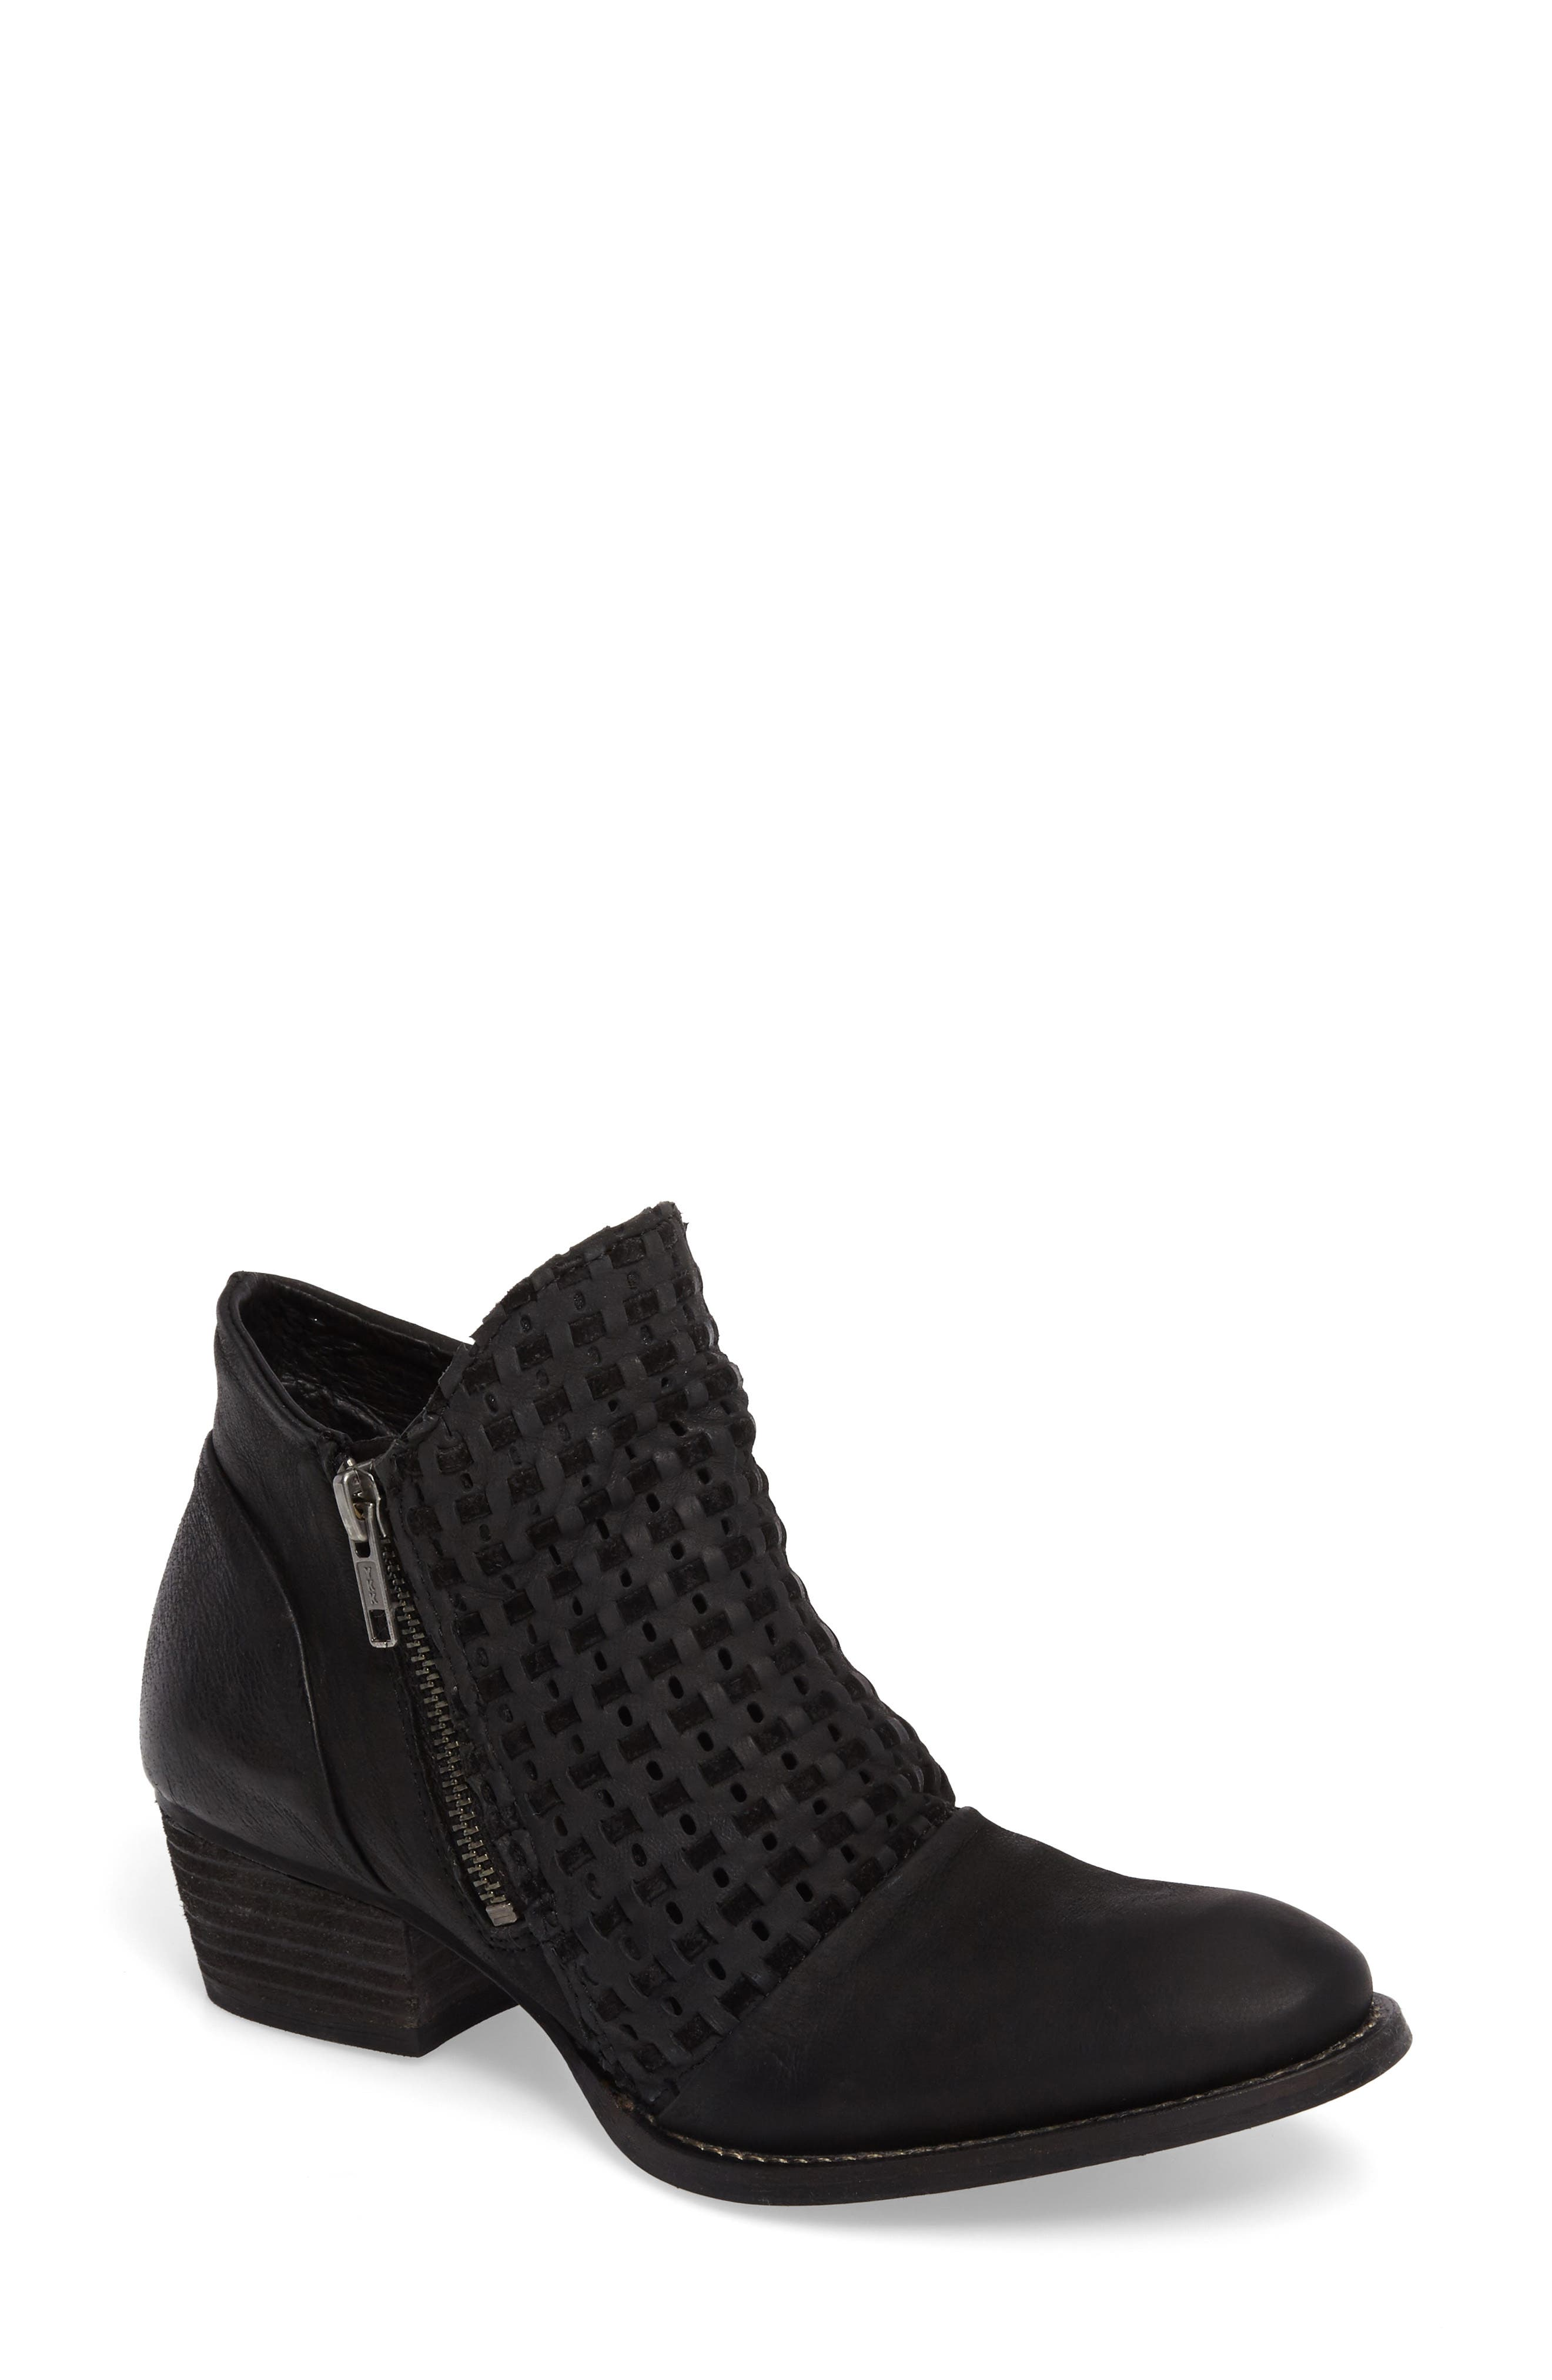 SPLENDID Ravi Perforated Woven Bootie